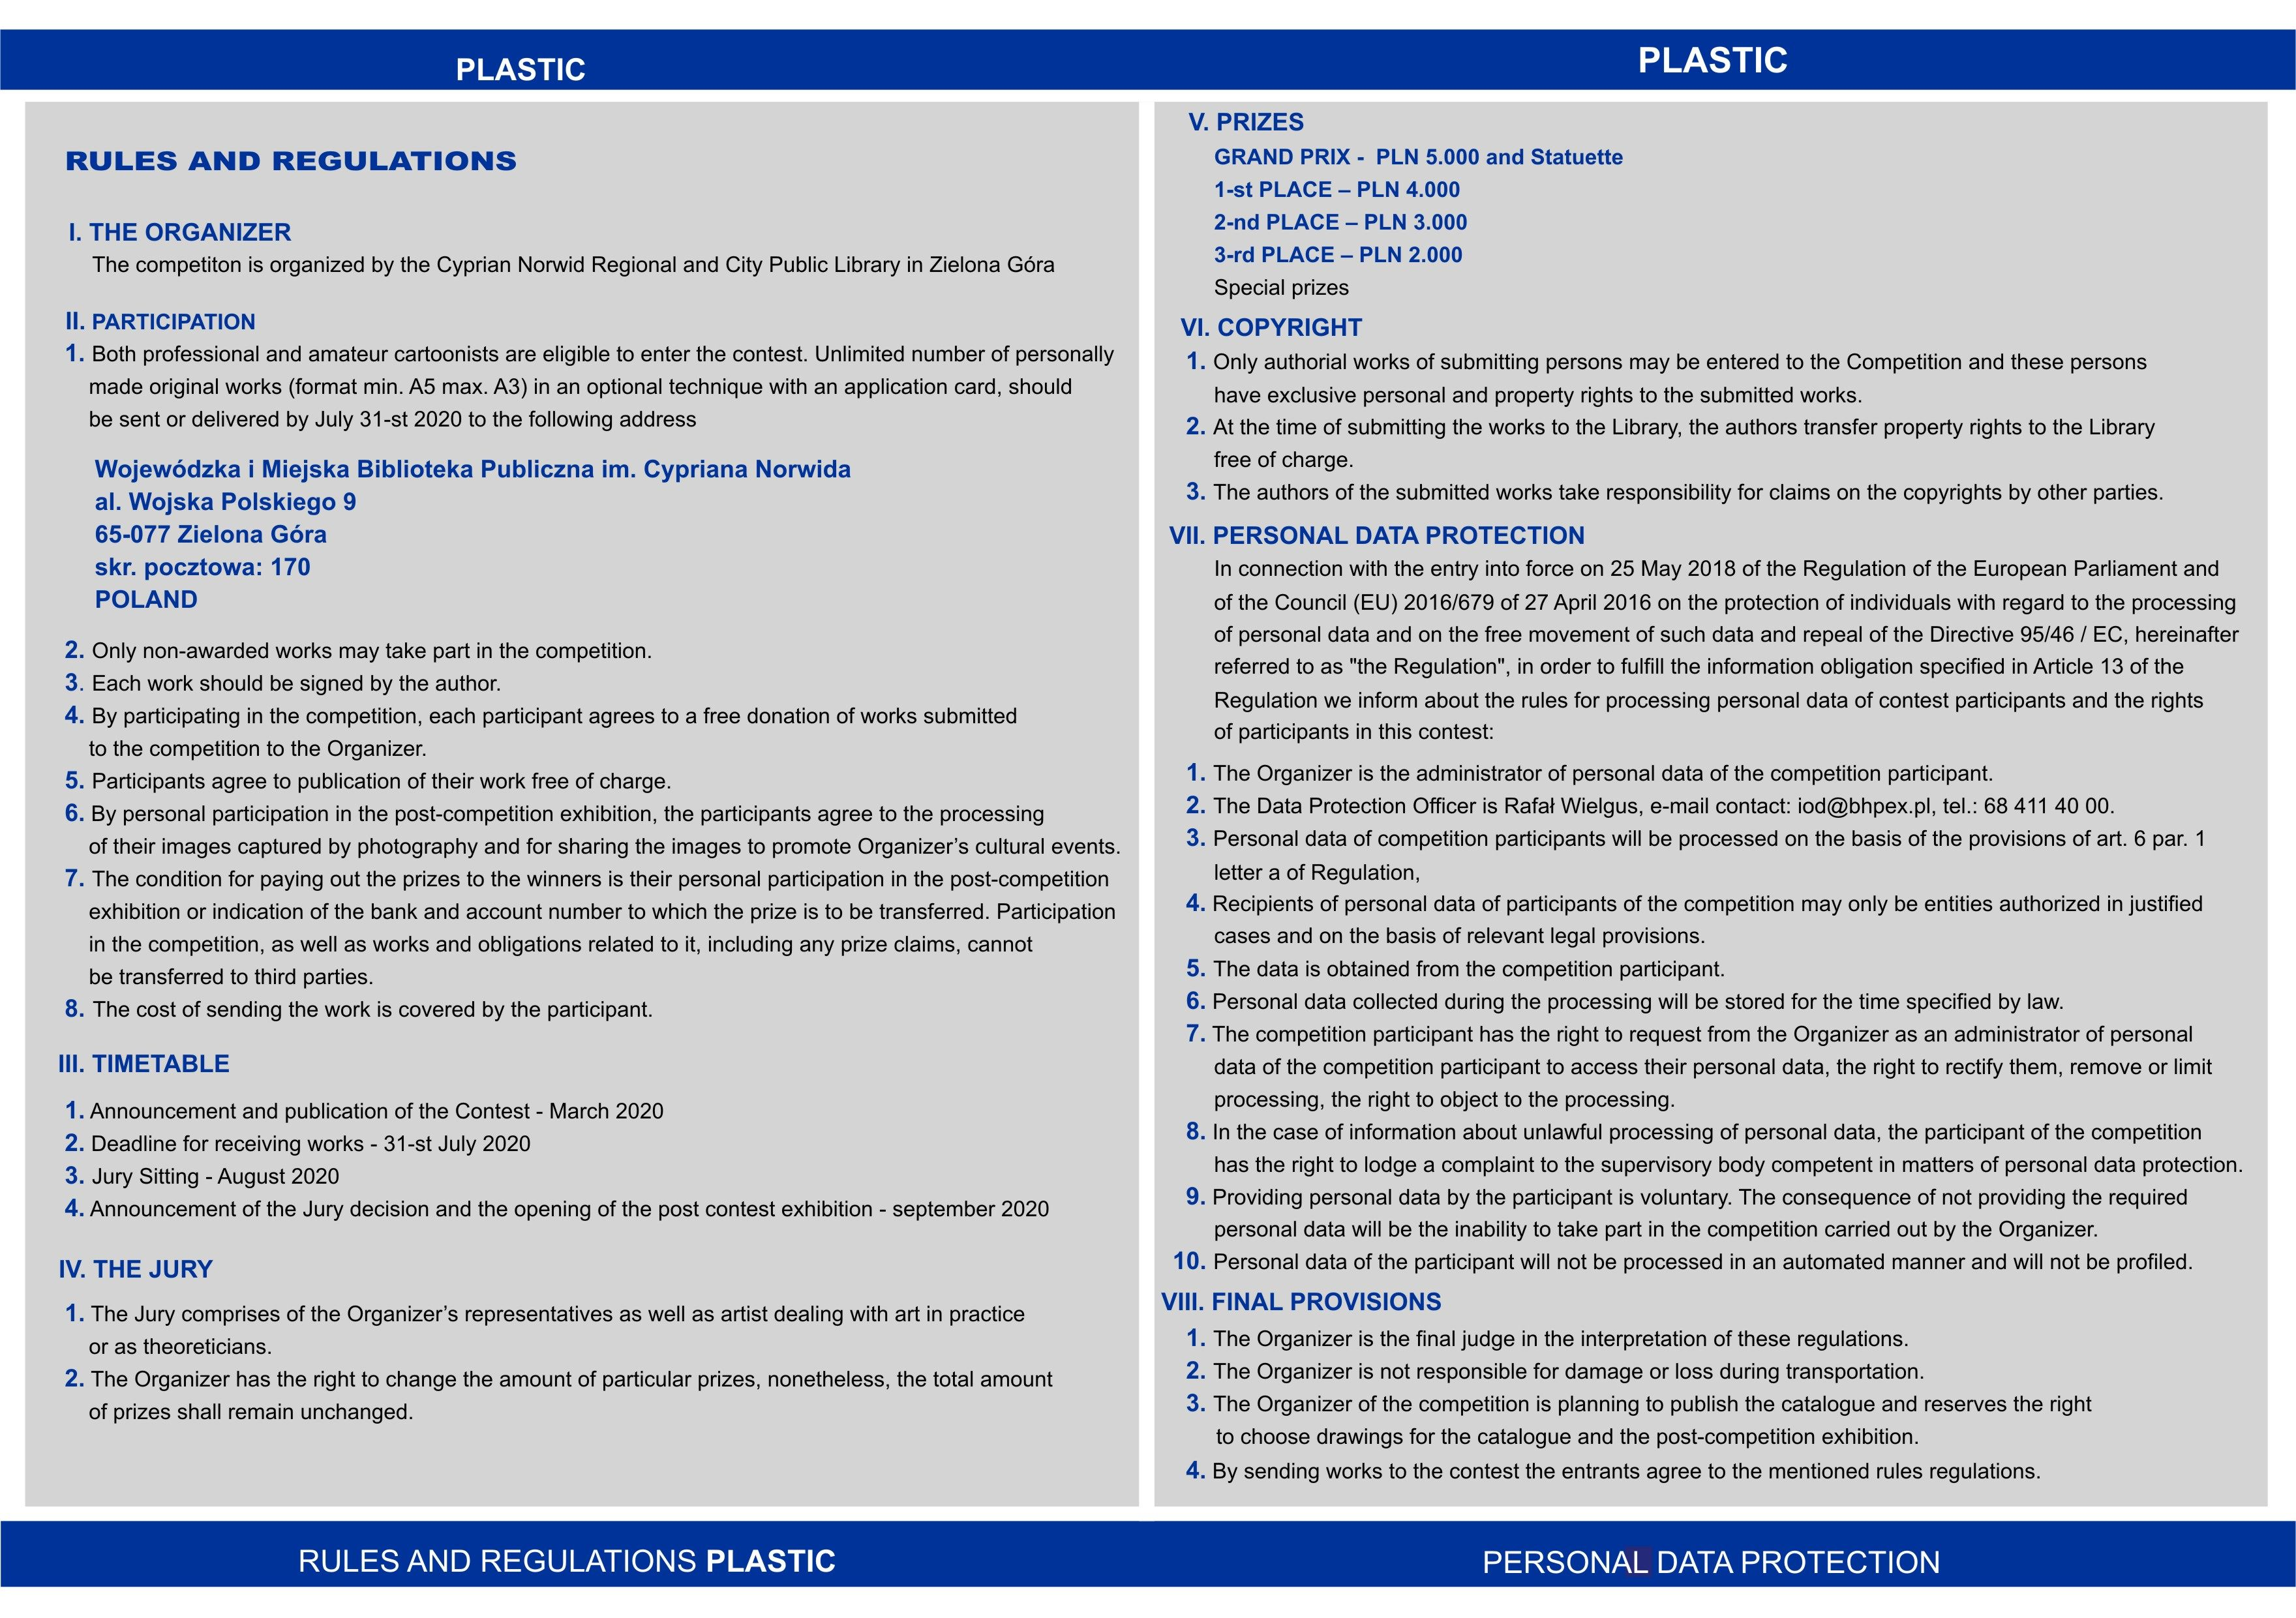 rules and regulations-PLASTIC